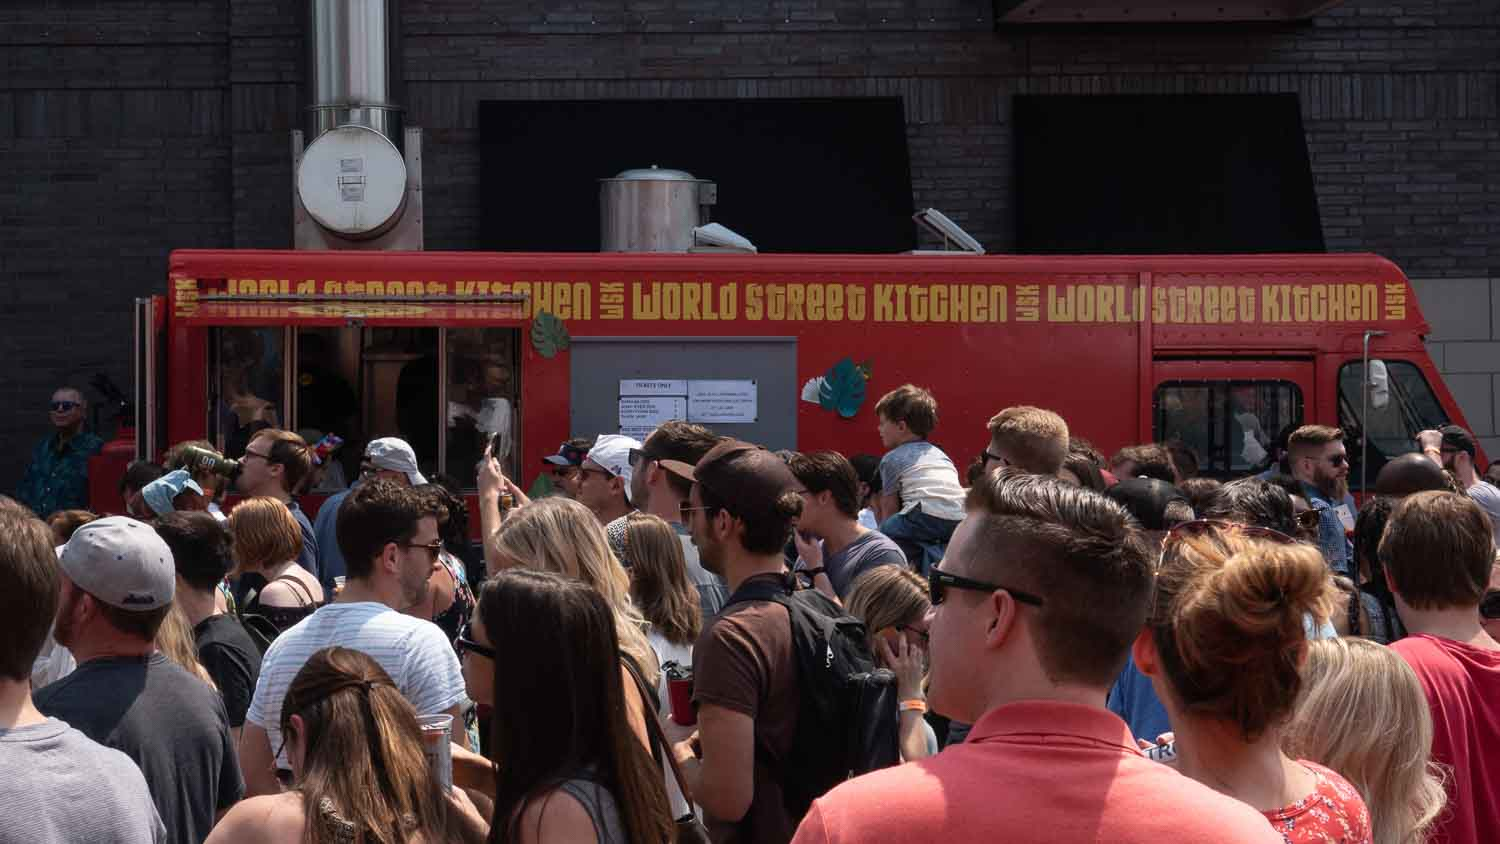 Food truck making food for crowd